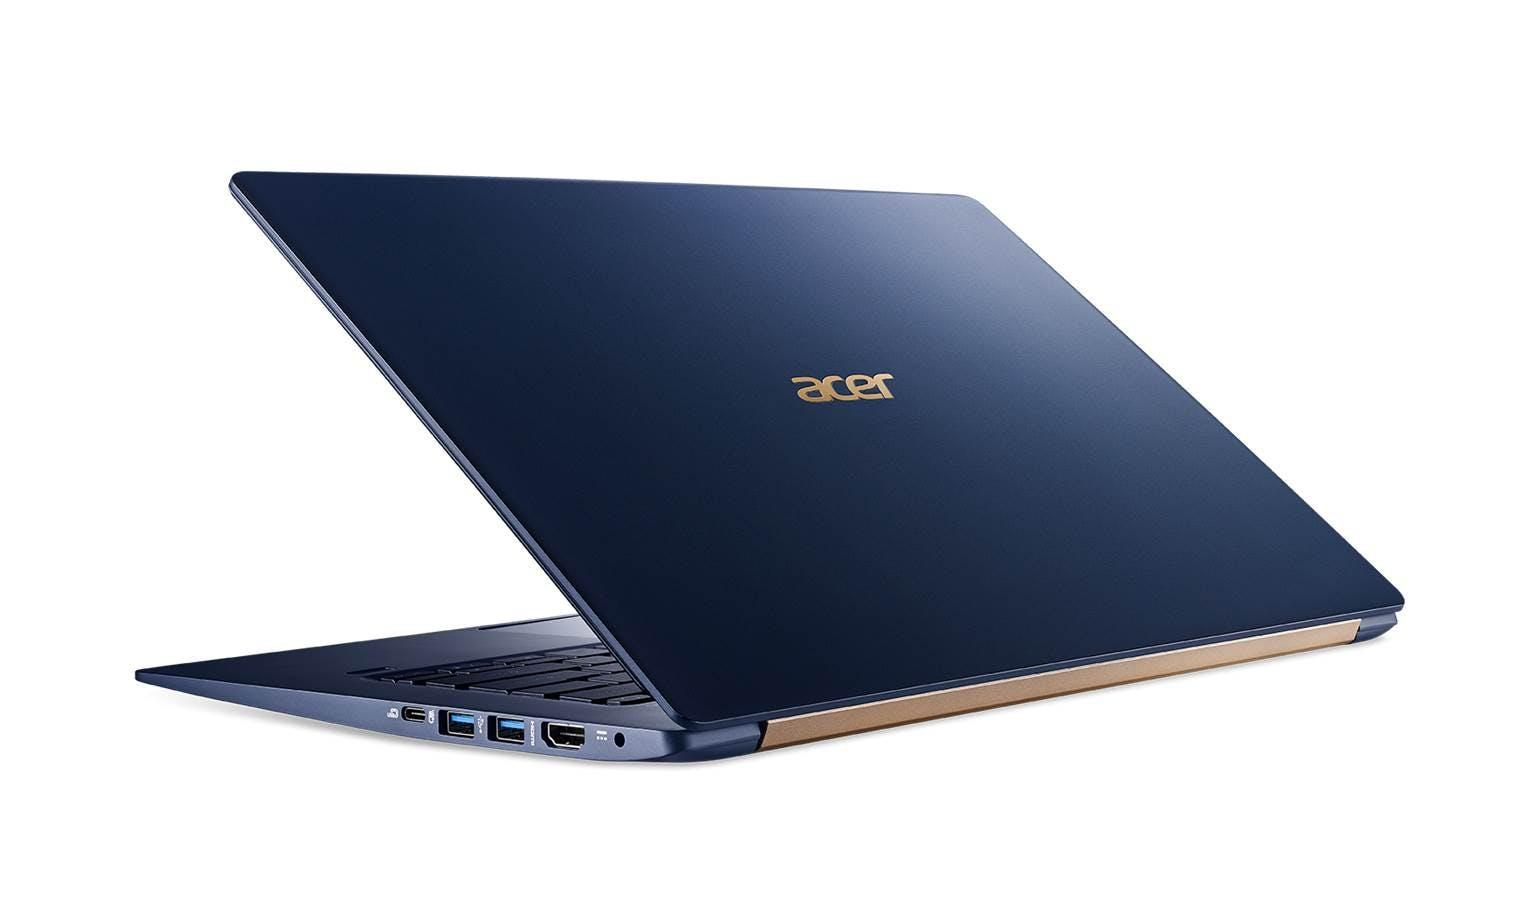 Acer Swift 5 SF514-52T-5702 (Blue) Thin & Light Laptop